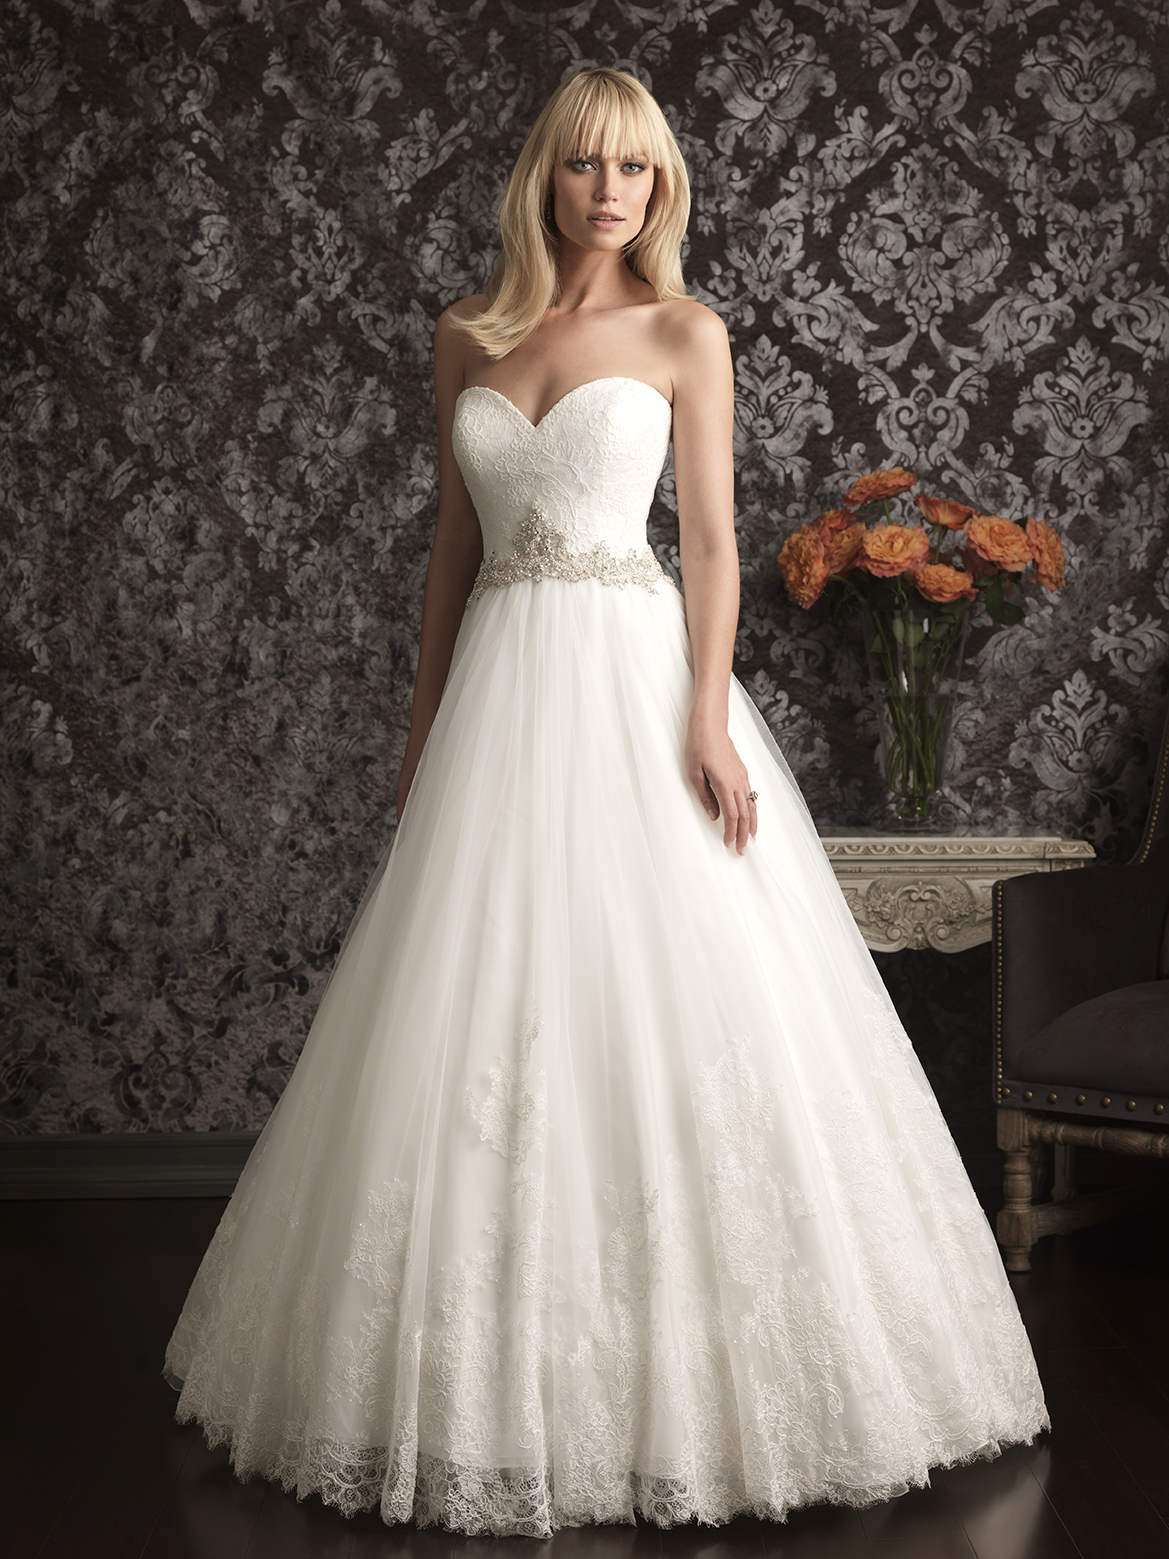 allure bridals wedding dress bridal gown allure collection 2013 9014f. Black Bedroom Furniture Sets. Home Design Ideas